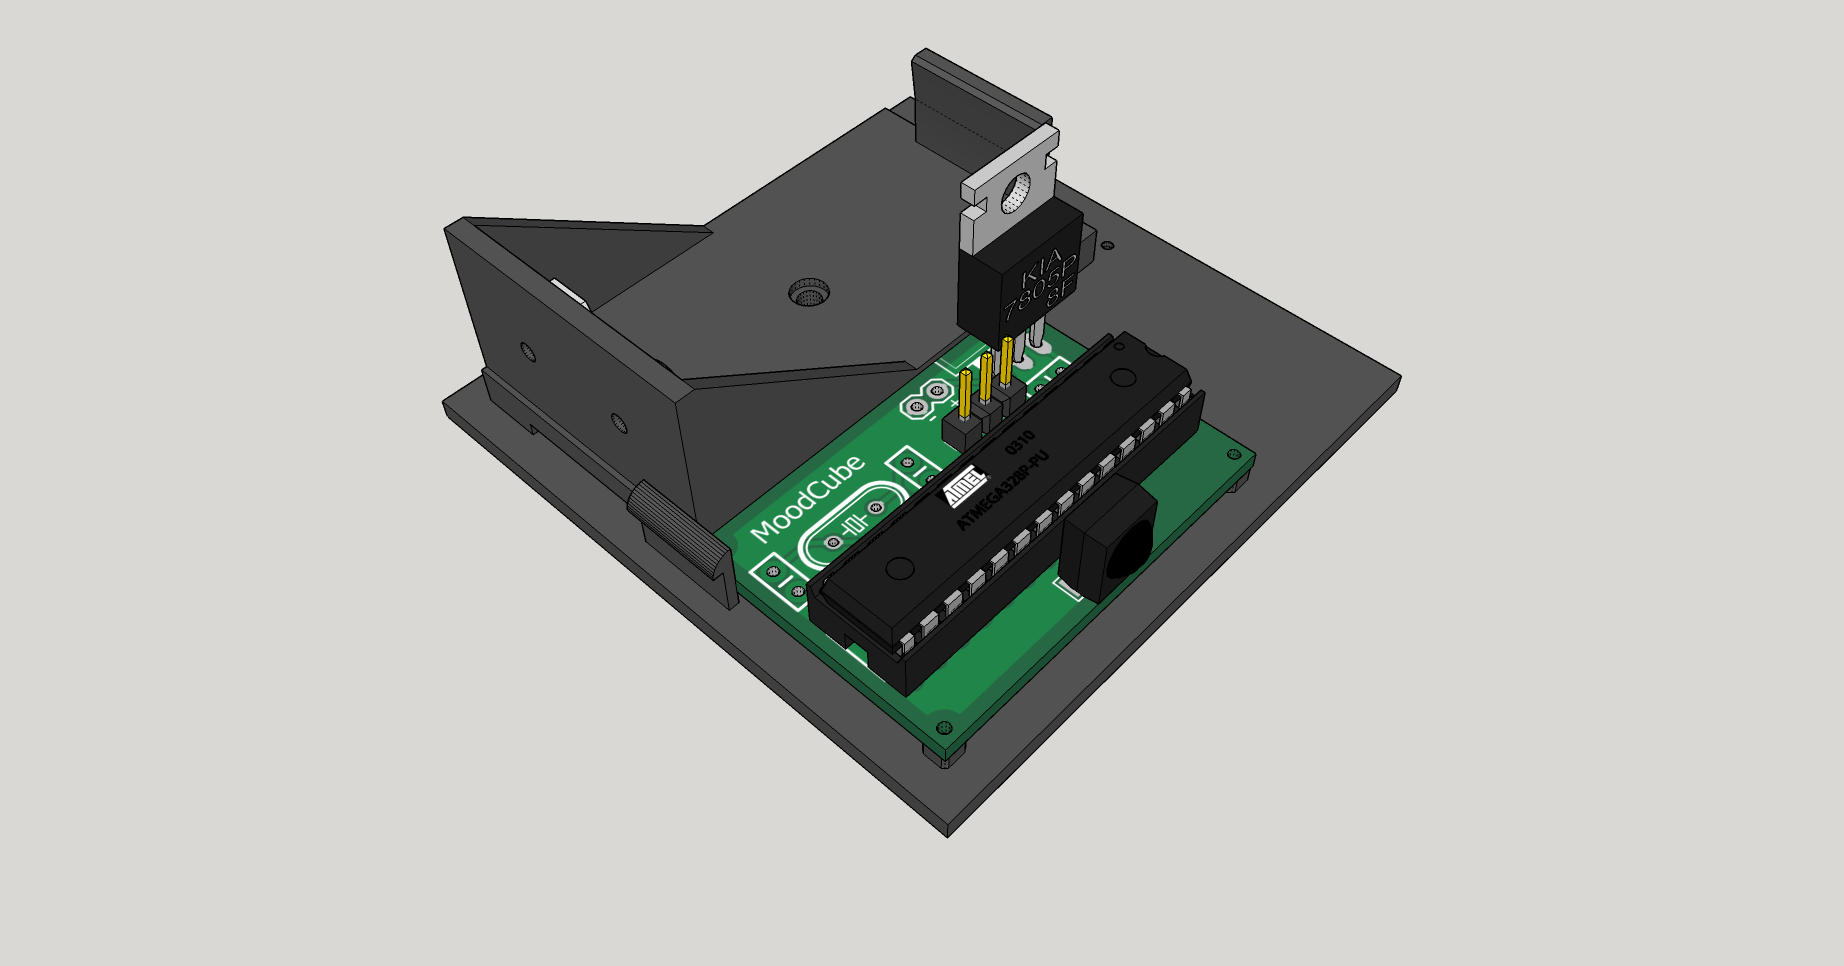 How To Turn An Arduino Based Proof Of Concept Into A Final Prototype Wholesale China Custom Electronic Printed Circuit Board Design Pcb Once You Are Satisfied With Your Can Use The Solid Inspector Tool Check If Components Solids They Pass Test